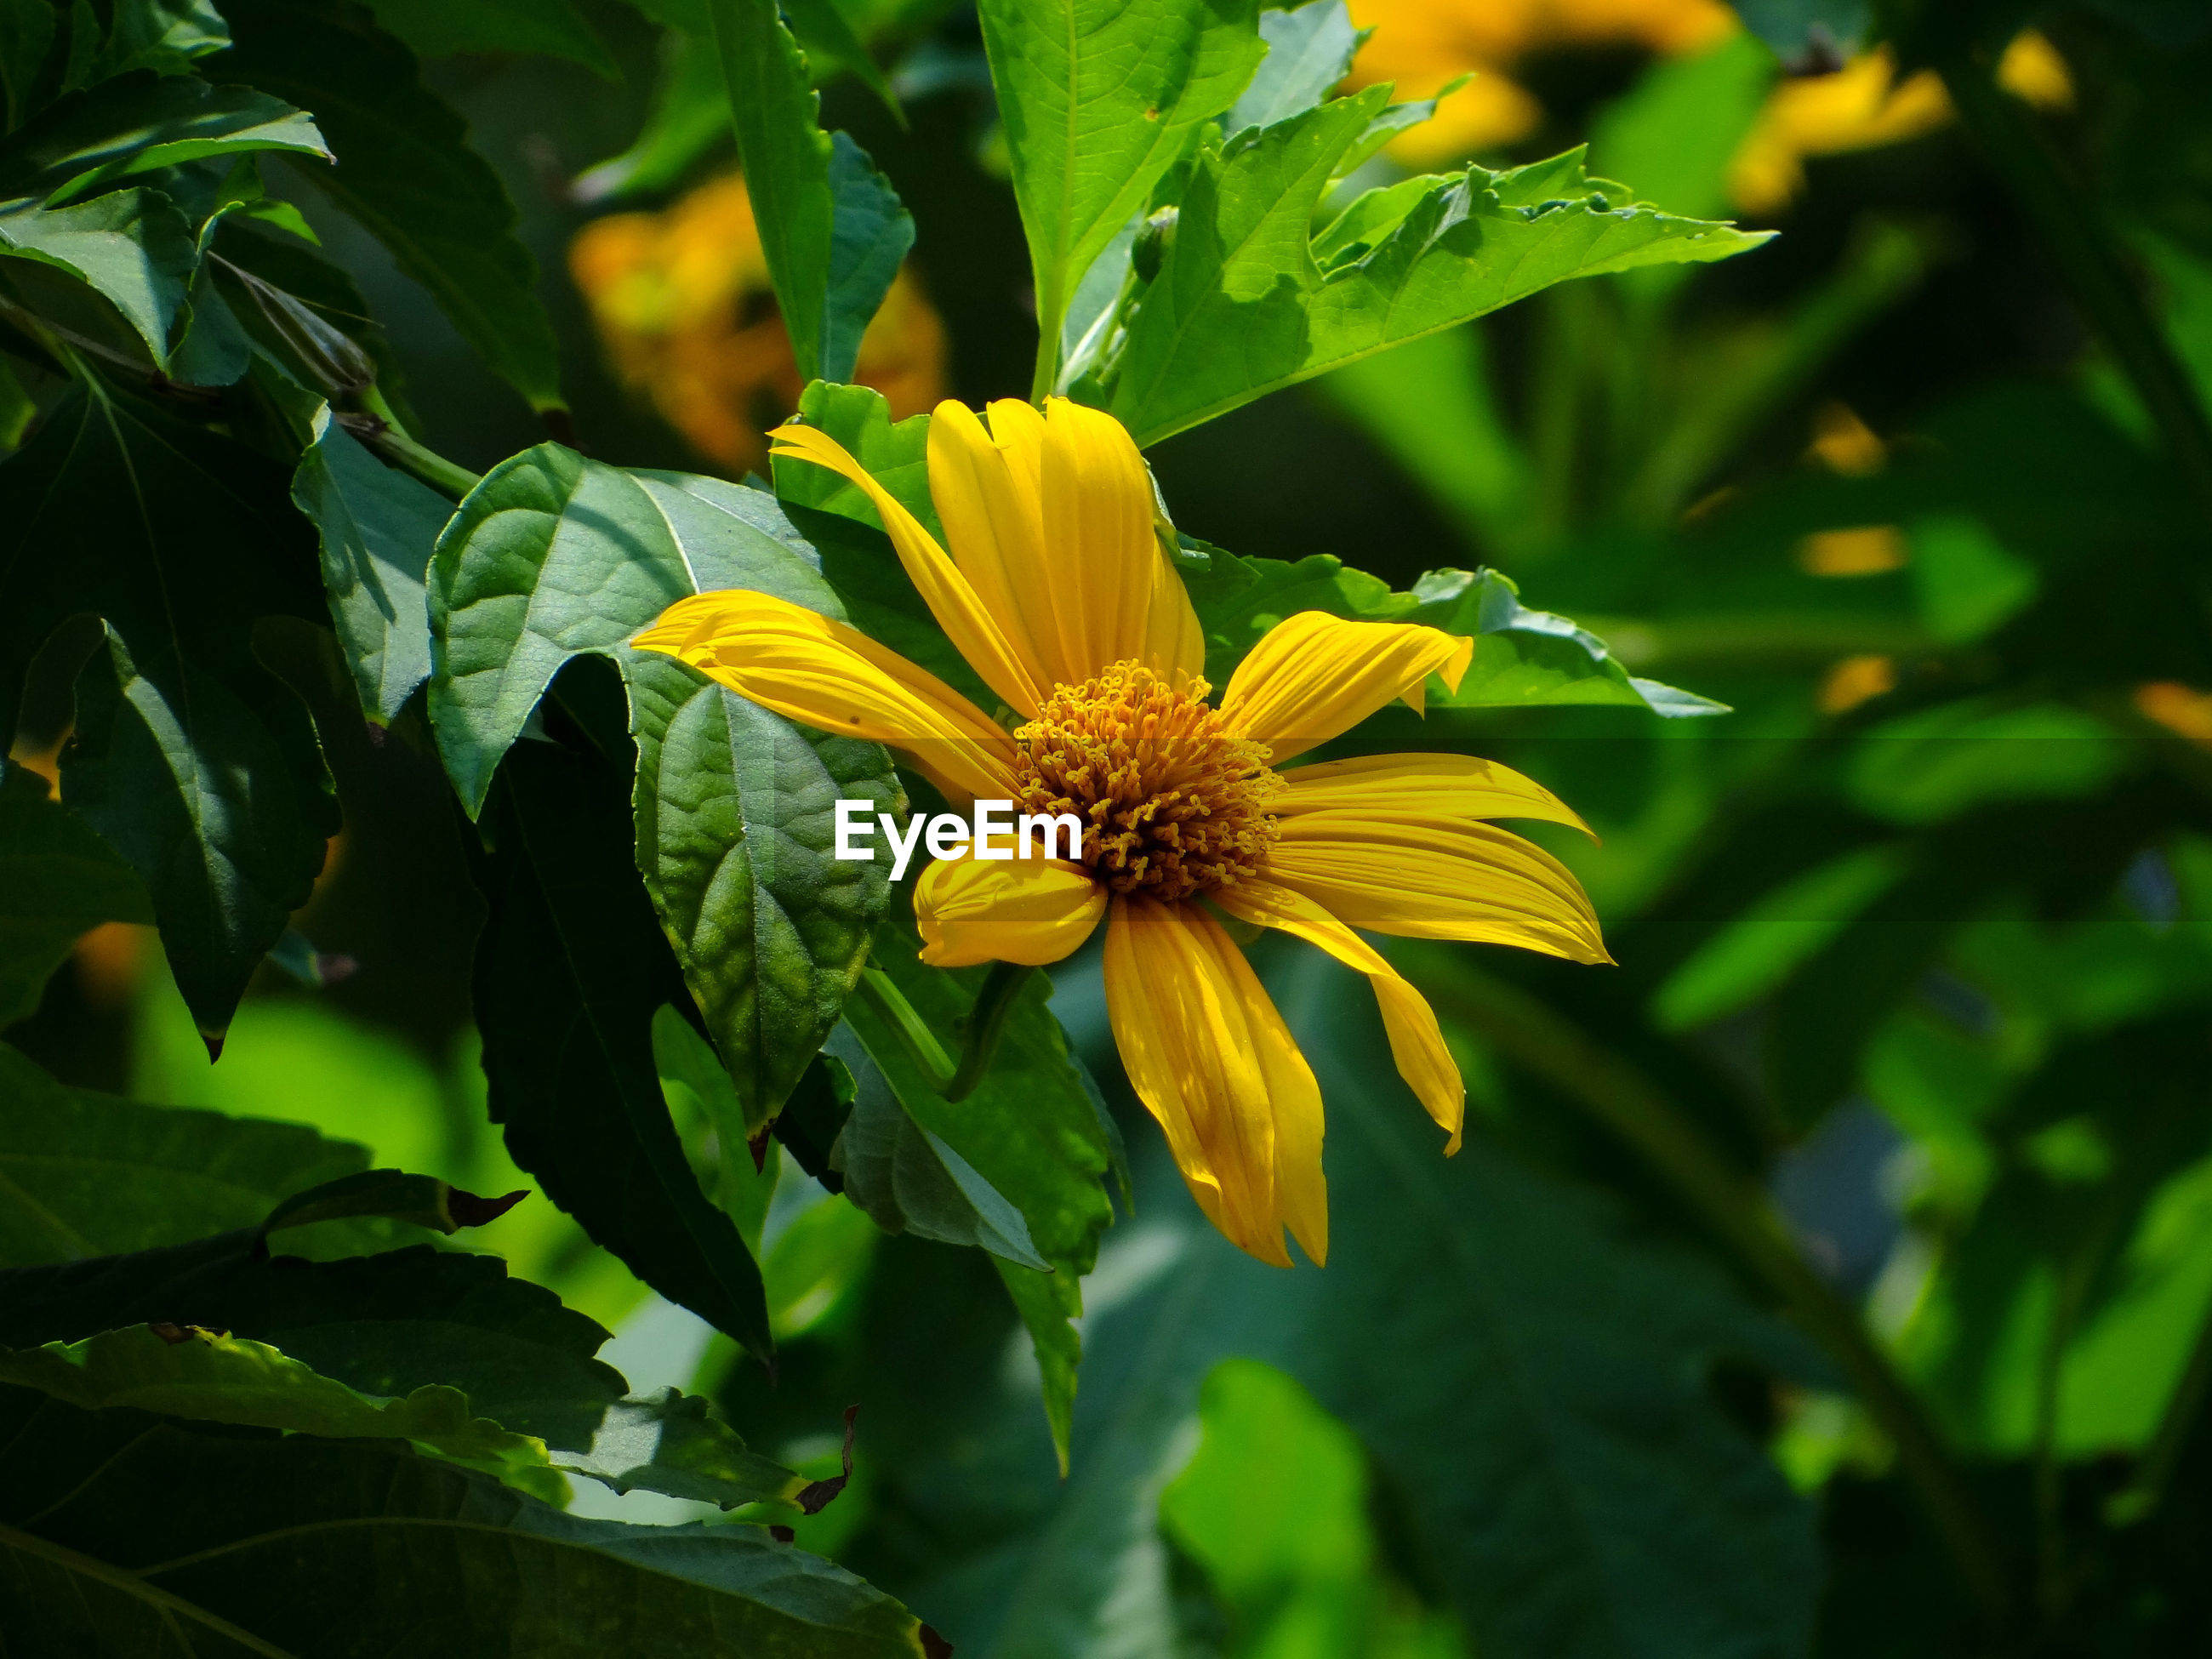 CLOSE-UP OF YELLOW FLOWER AGAINST PLANTS